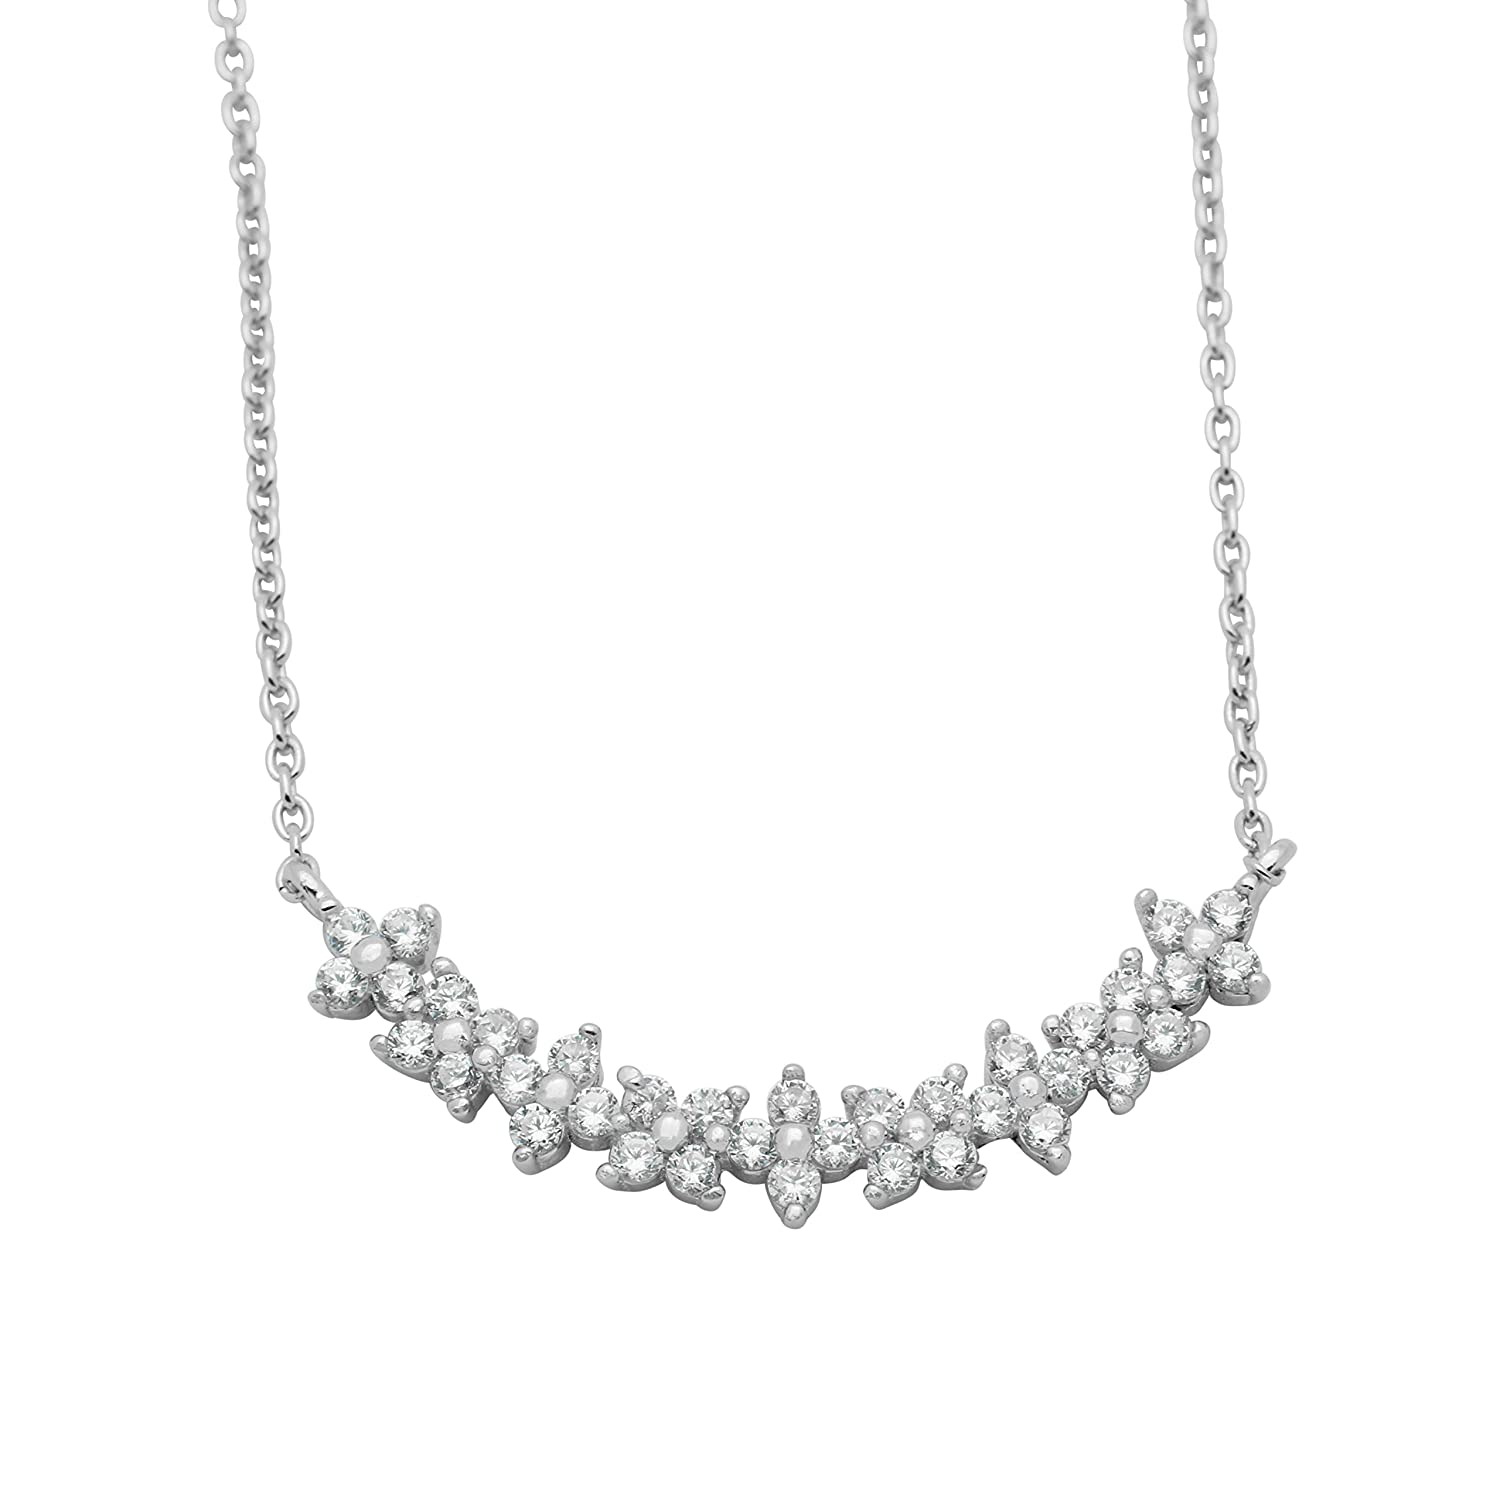 925 Sterling Silver 16 CZ Necklace with 2 extension Floral flower pendant necklace Clear CZ Accent